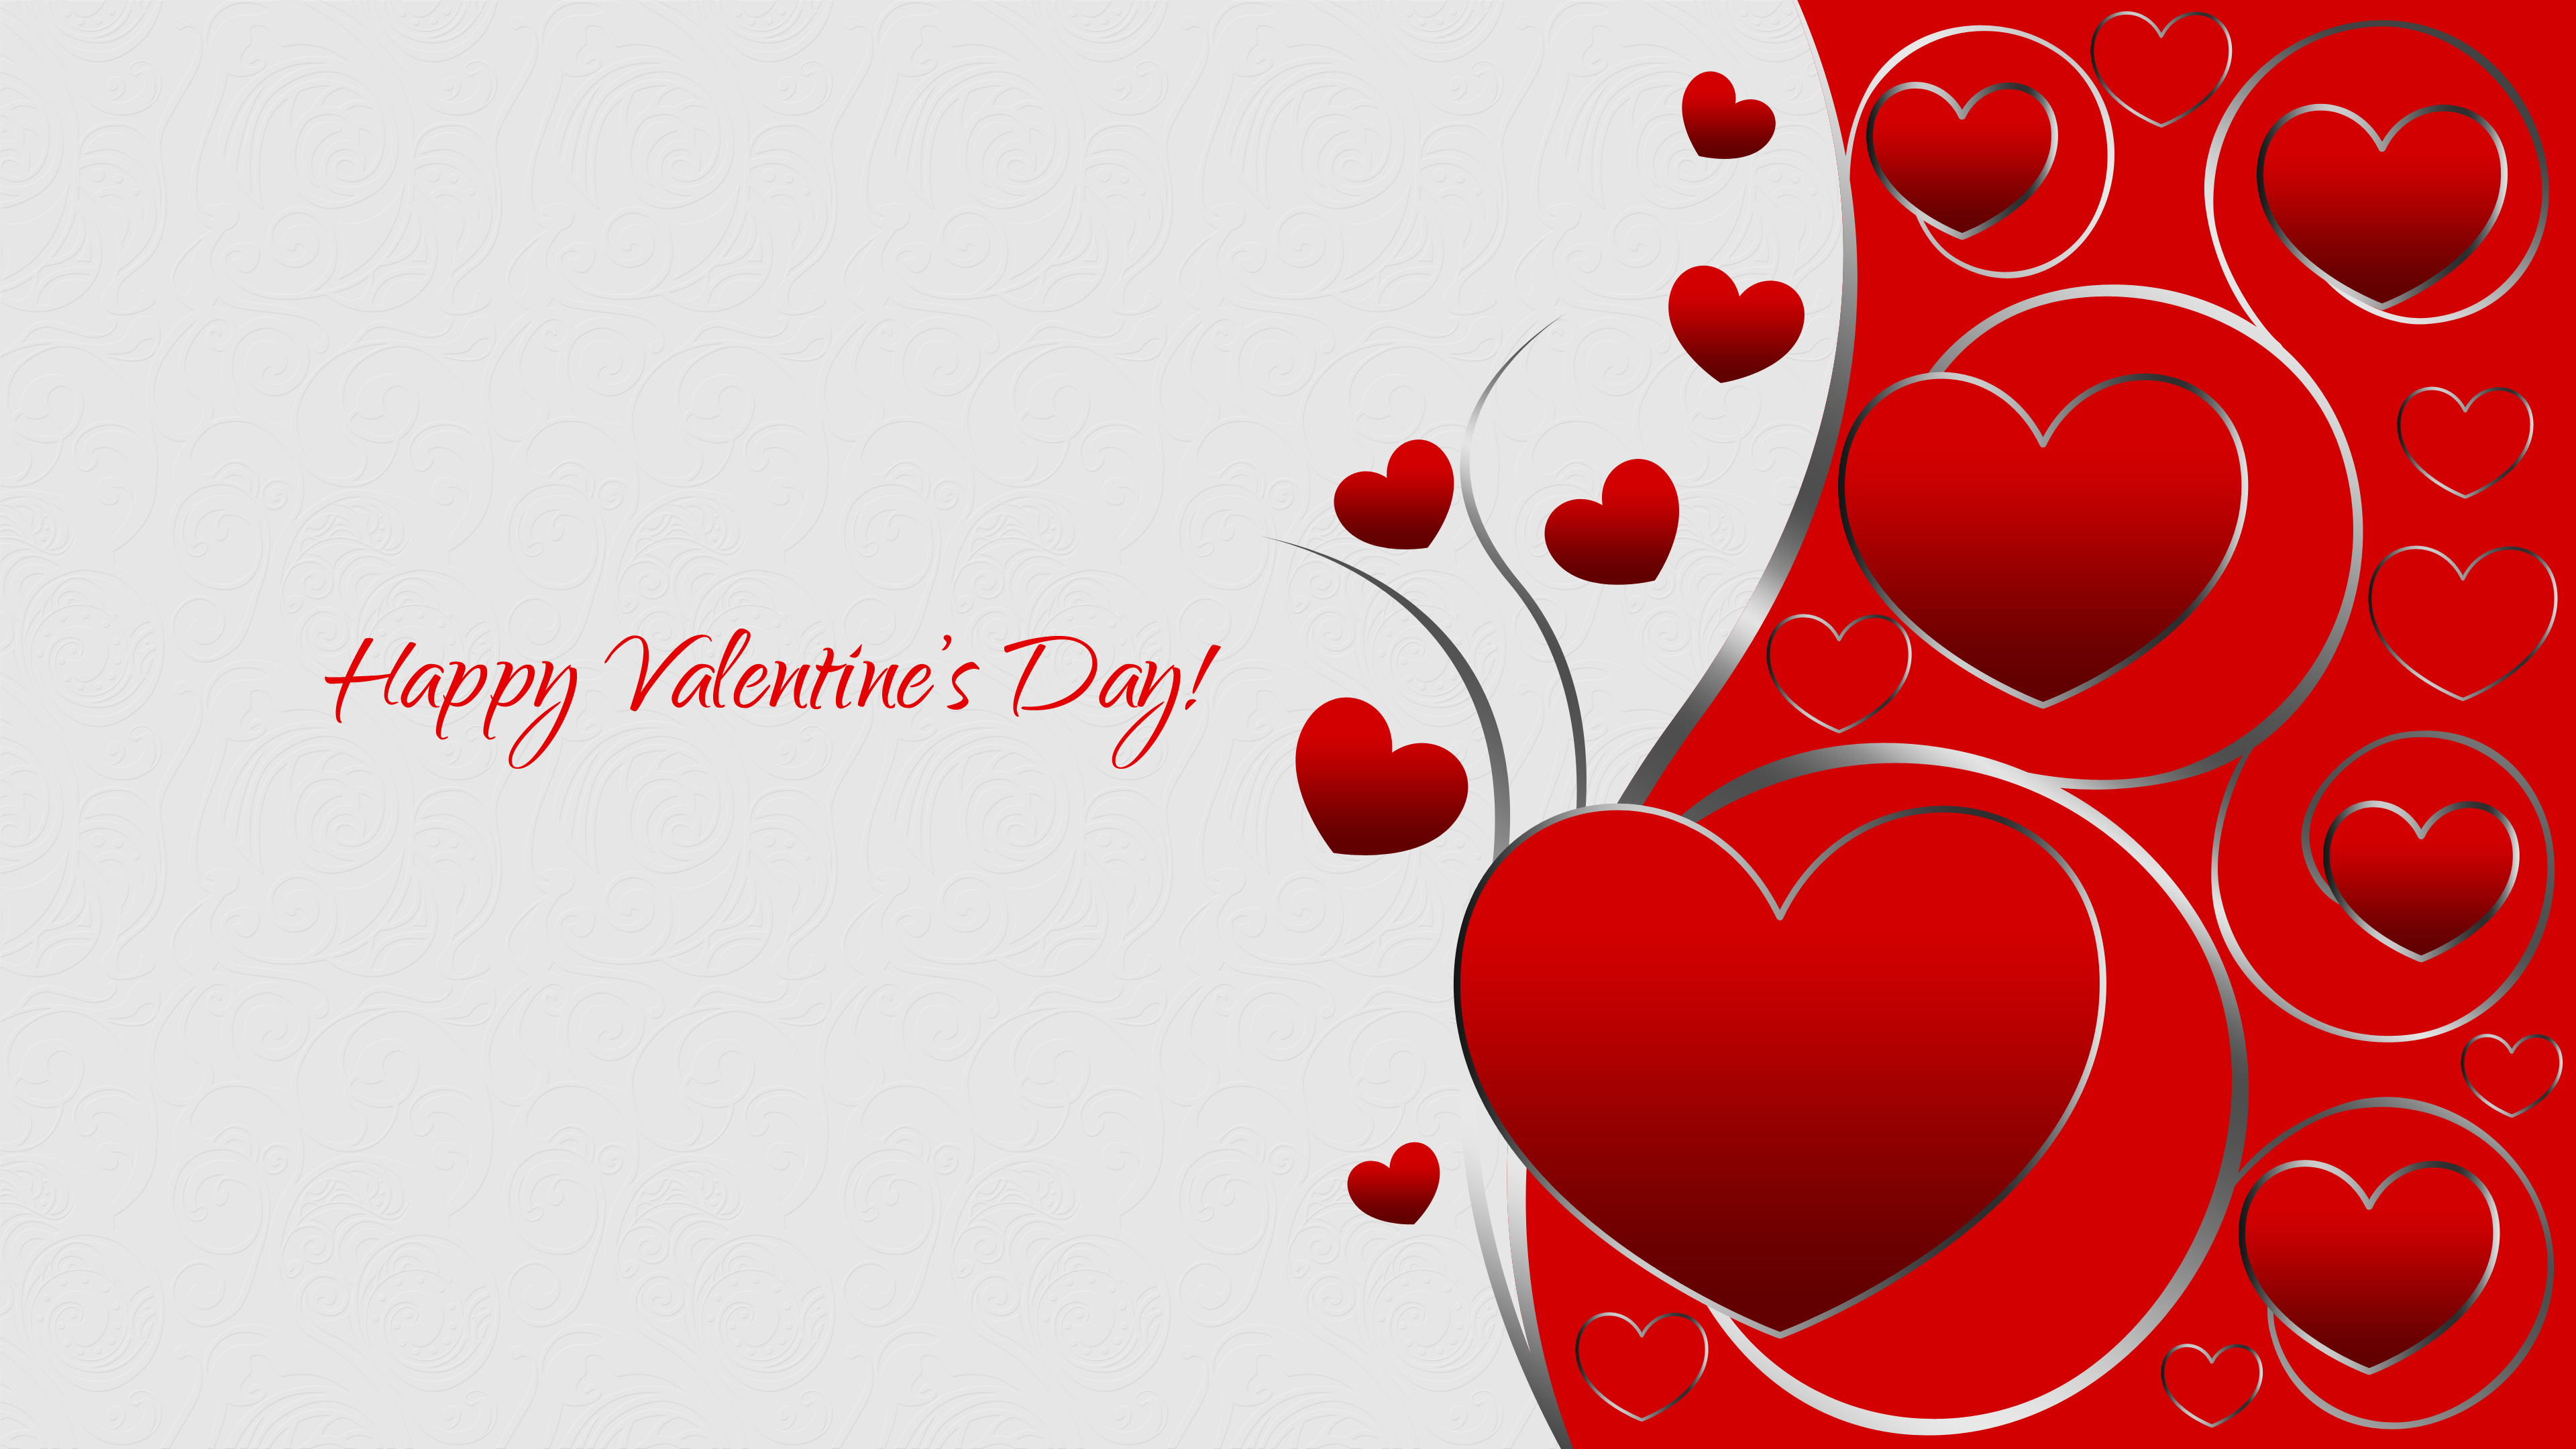 Valentines Day Wallpapers 88 3840x2160